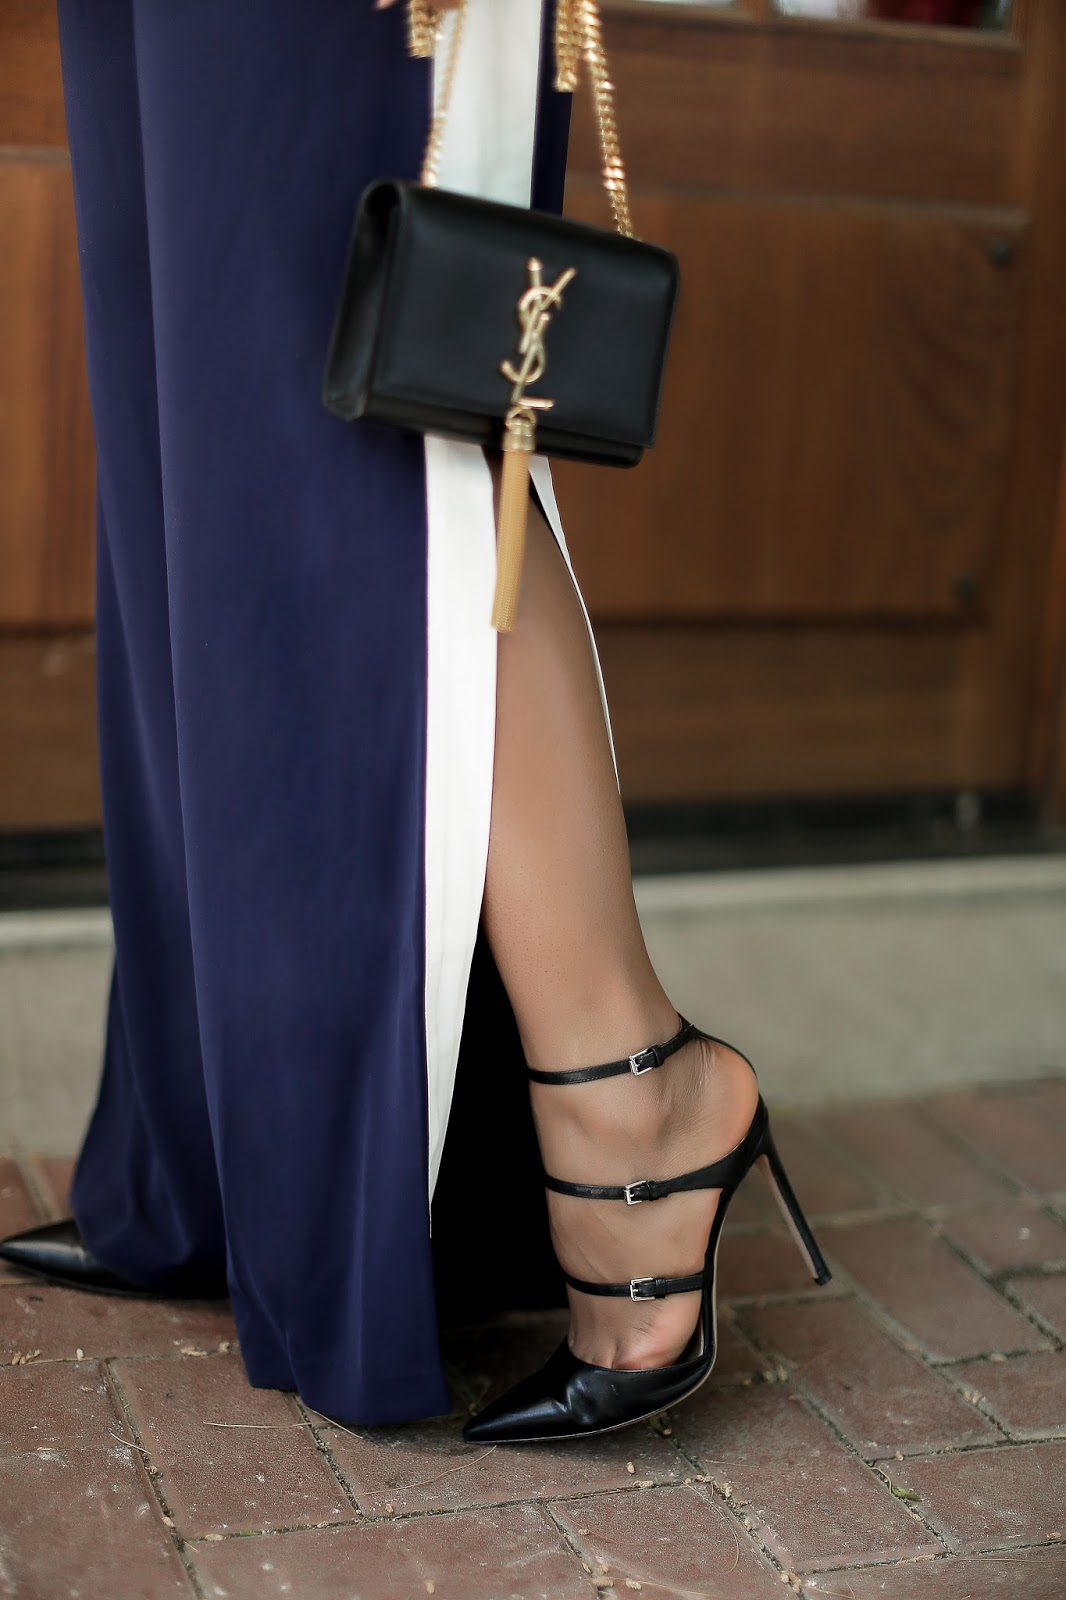 Gianvito Rossi strap shoes, ysl bag, www.jadore-fashion.com